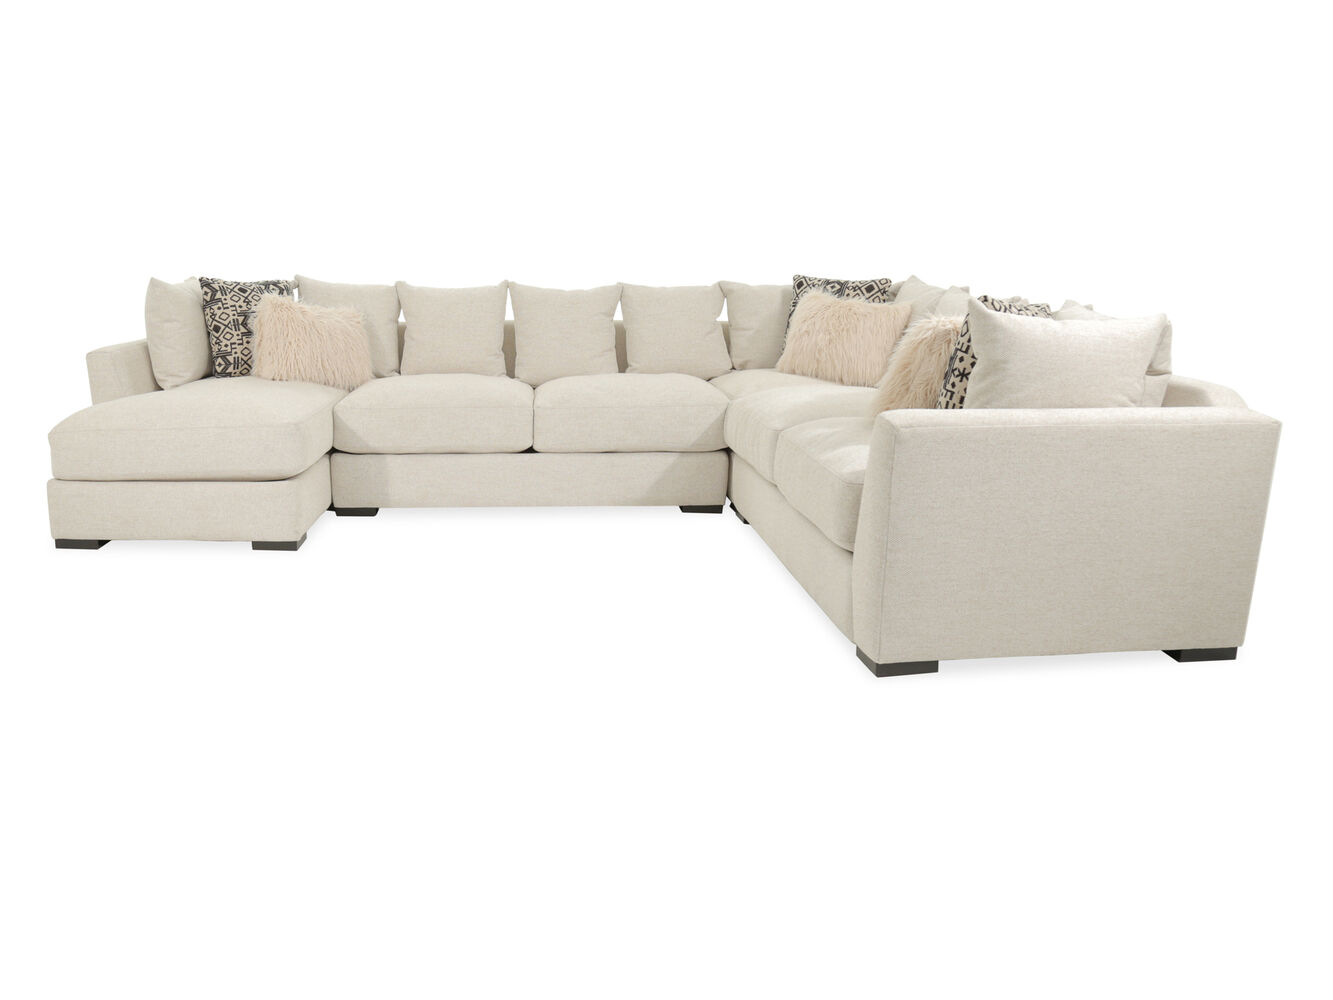 Jonathan Louis Sectional Sofa Choices Juno